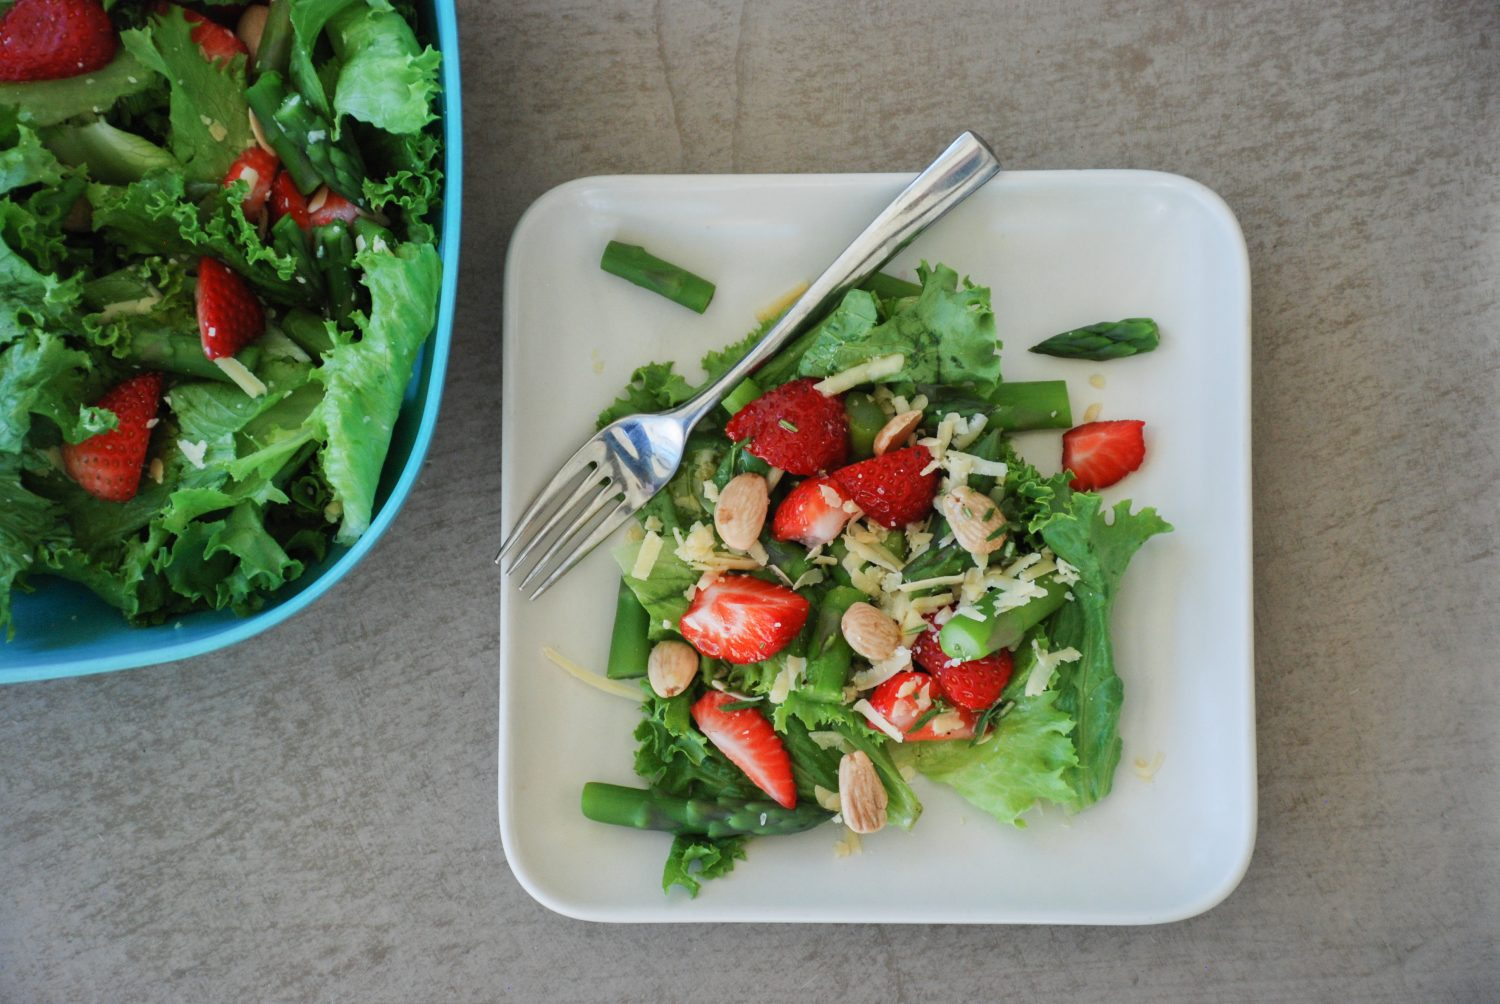 Strawberry & Asparagus Salad with Toasted Almonds